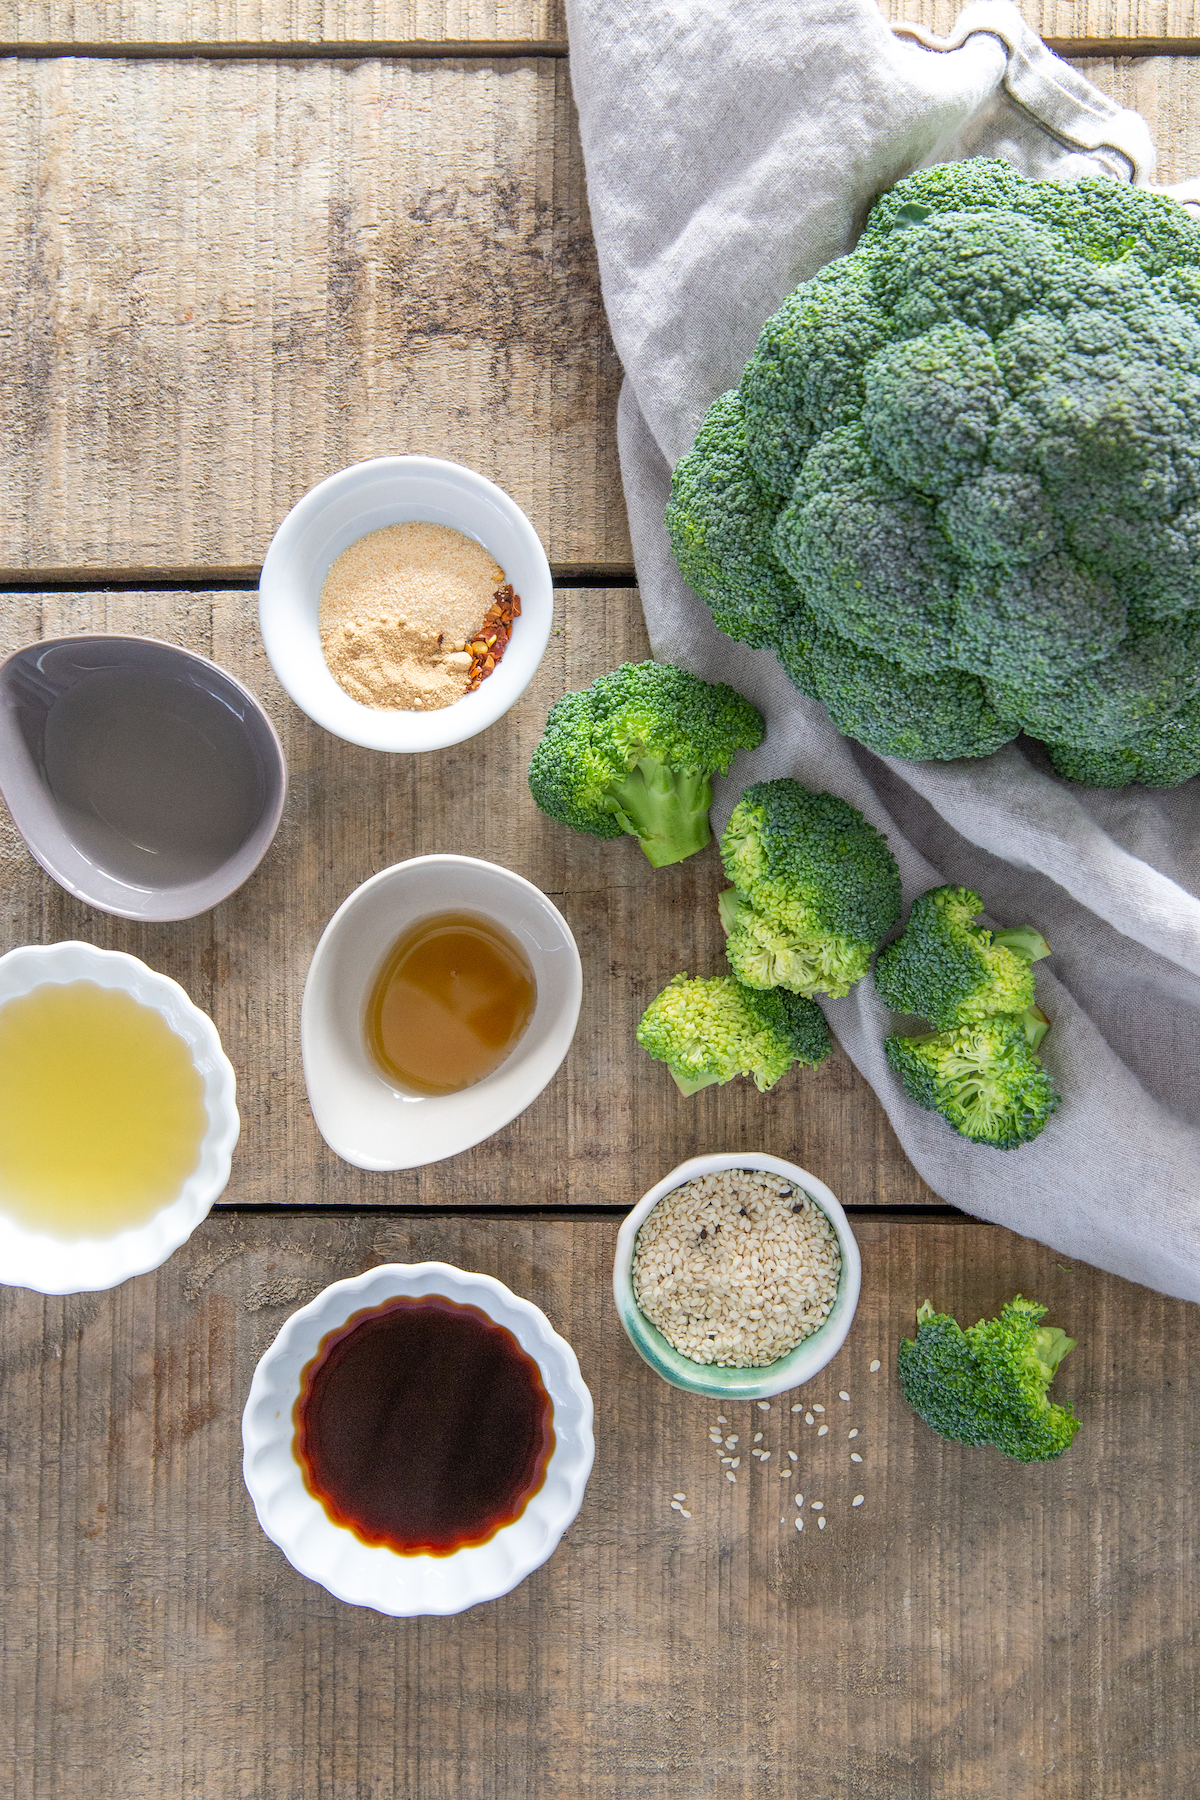 Ingredients for air fryer Asian roasted broccoli.